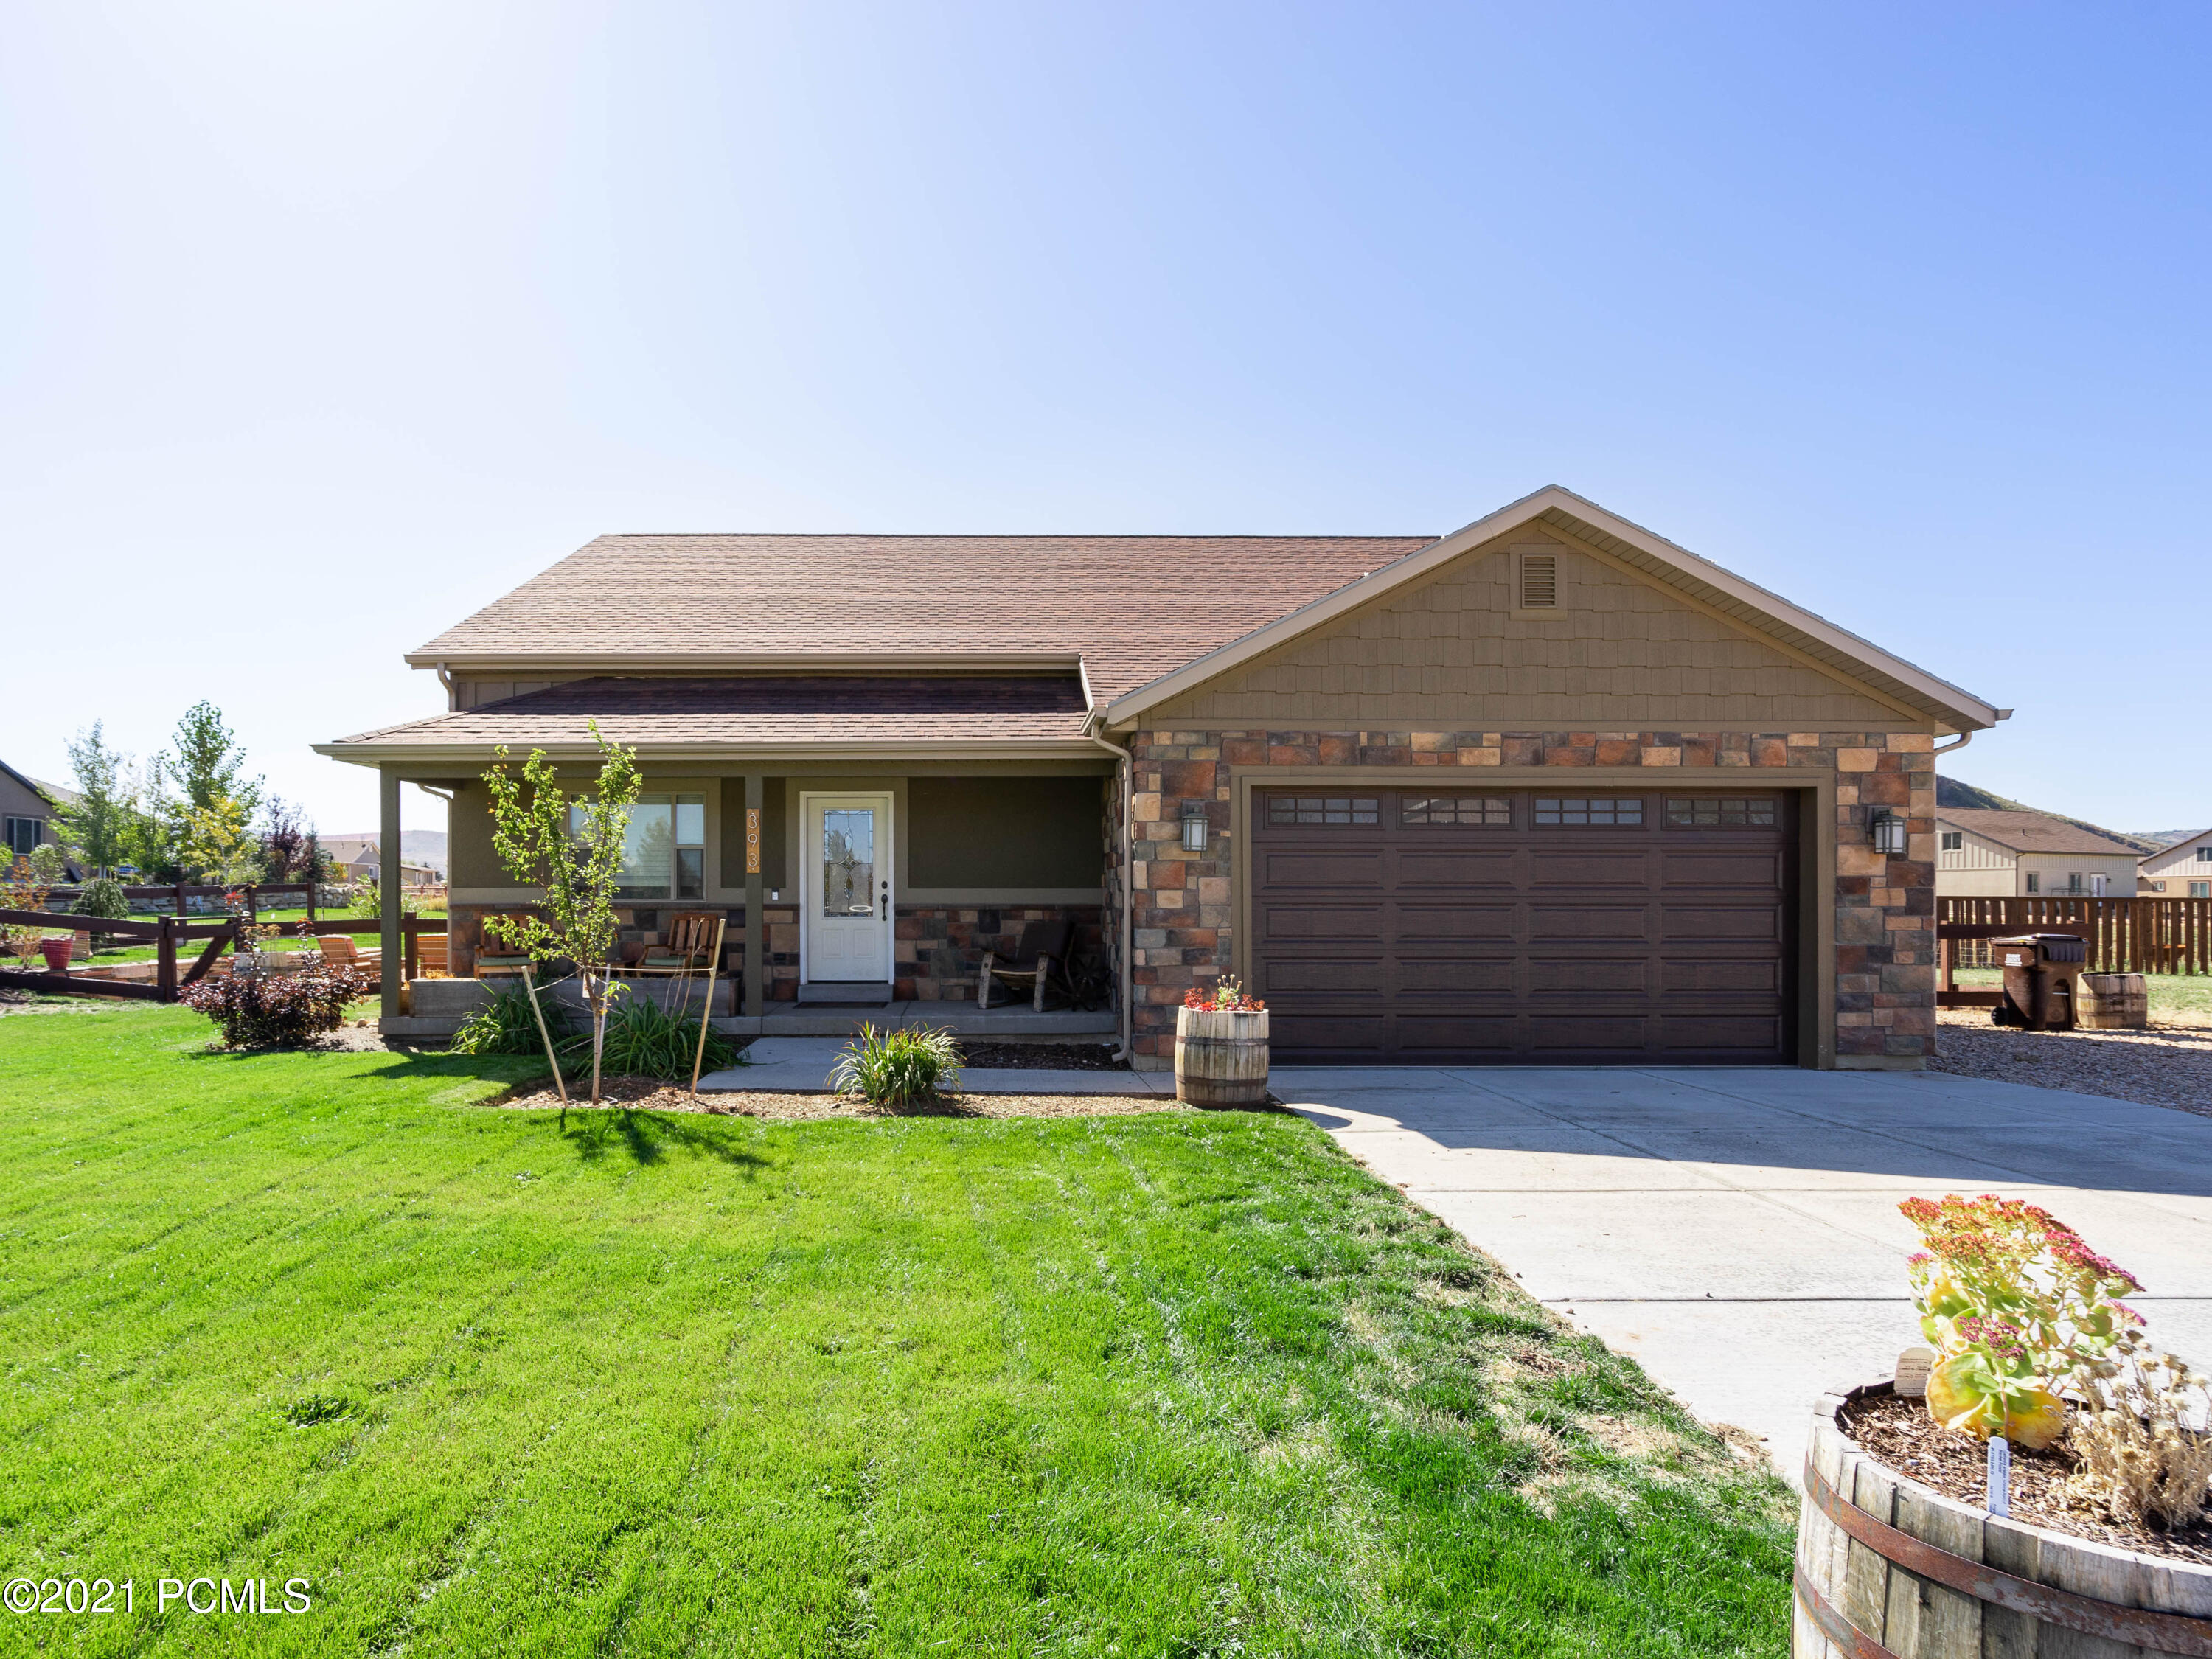 393 Scenic Heights Road, Francis, Utah 84036, 3 Bedrooms Bedrooms, ,2 BathroomsBathrooms,Single Family,For Sale,Scenic Heights,12101468